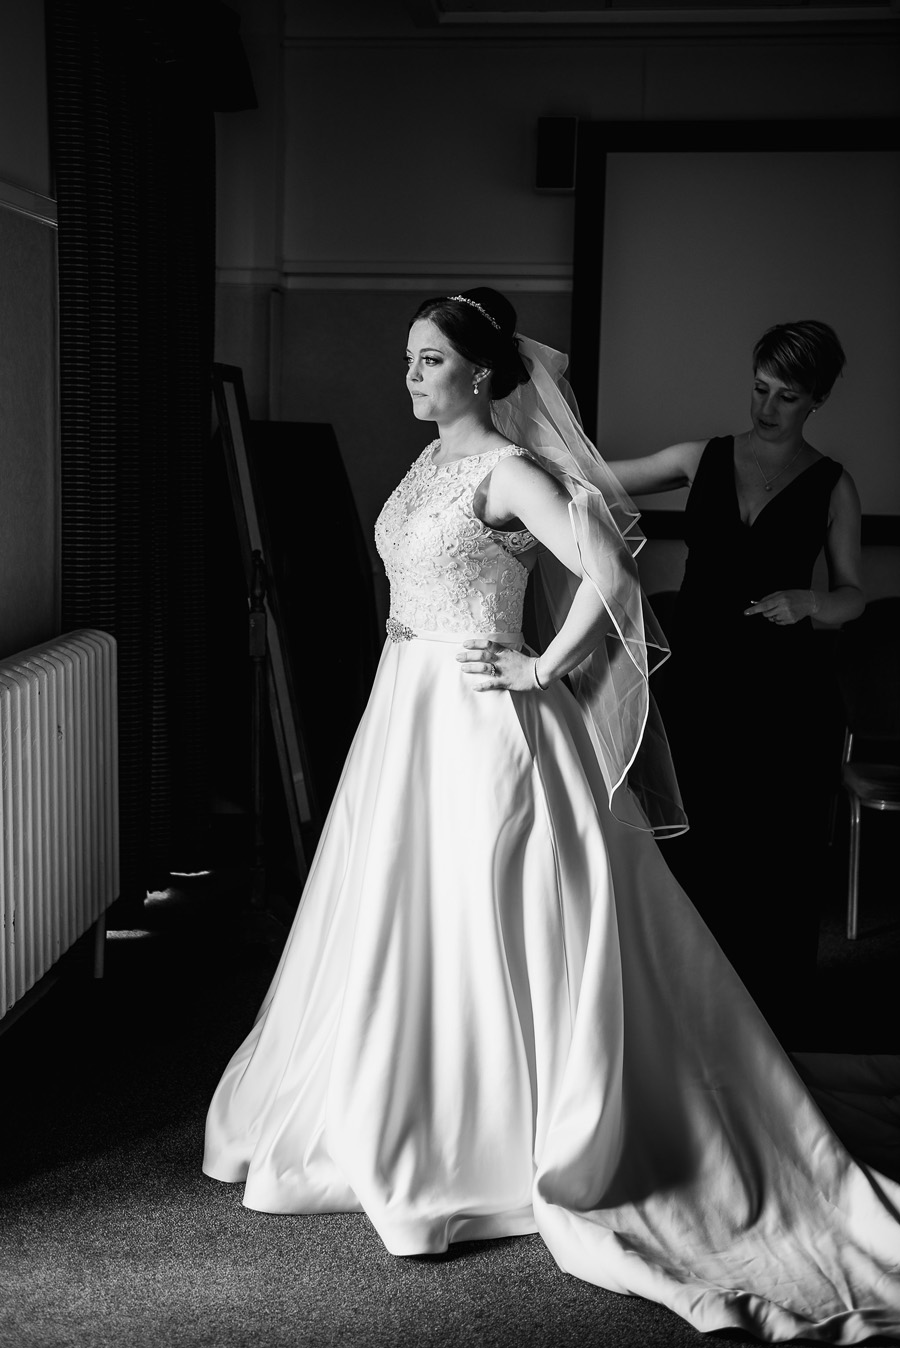 Stunning real wedding at Salomons Estate, images by Penny Young Photography (3)